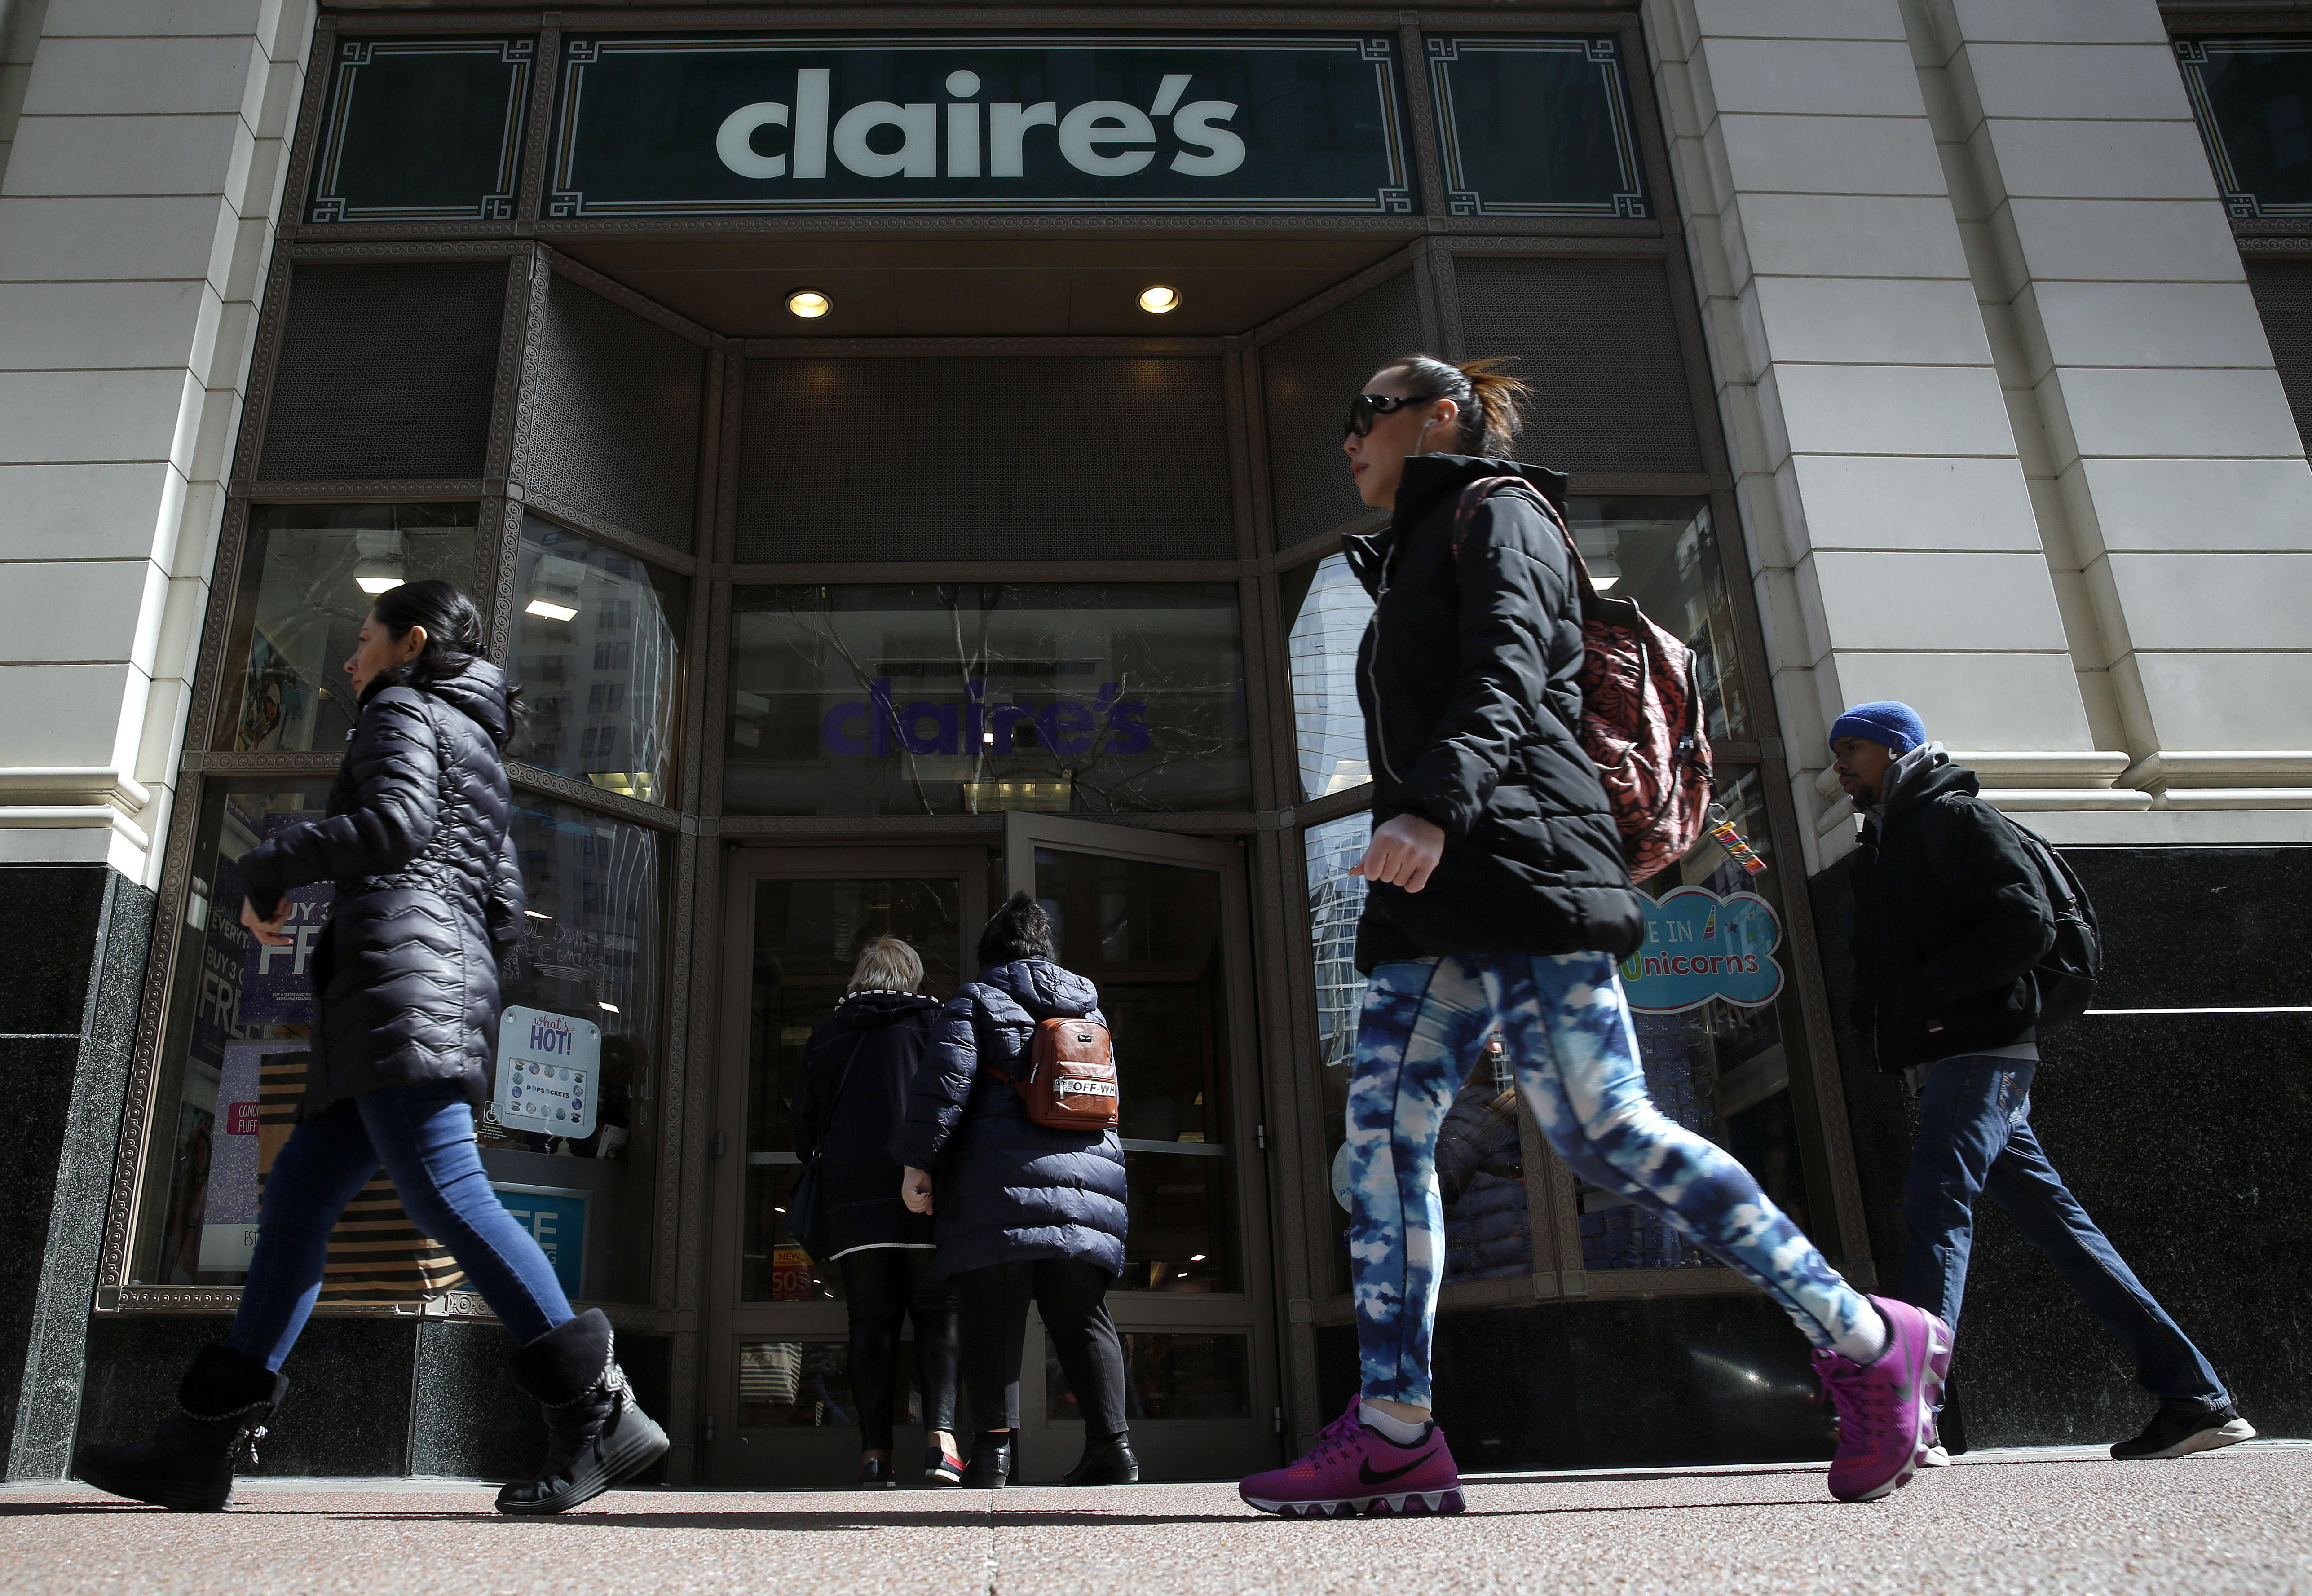 Asbestos in makeup: FDA finds asbestos in more cosmetics from Claire's Stores and Beauty Plus Global